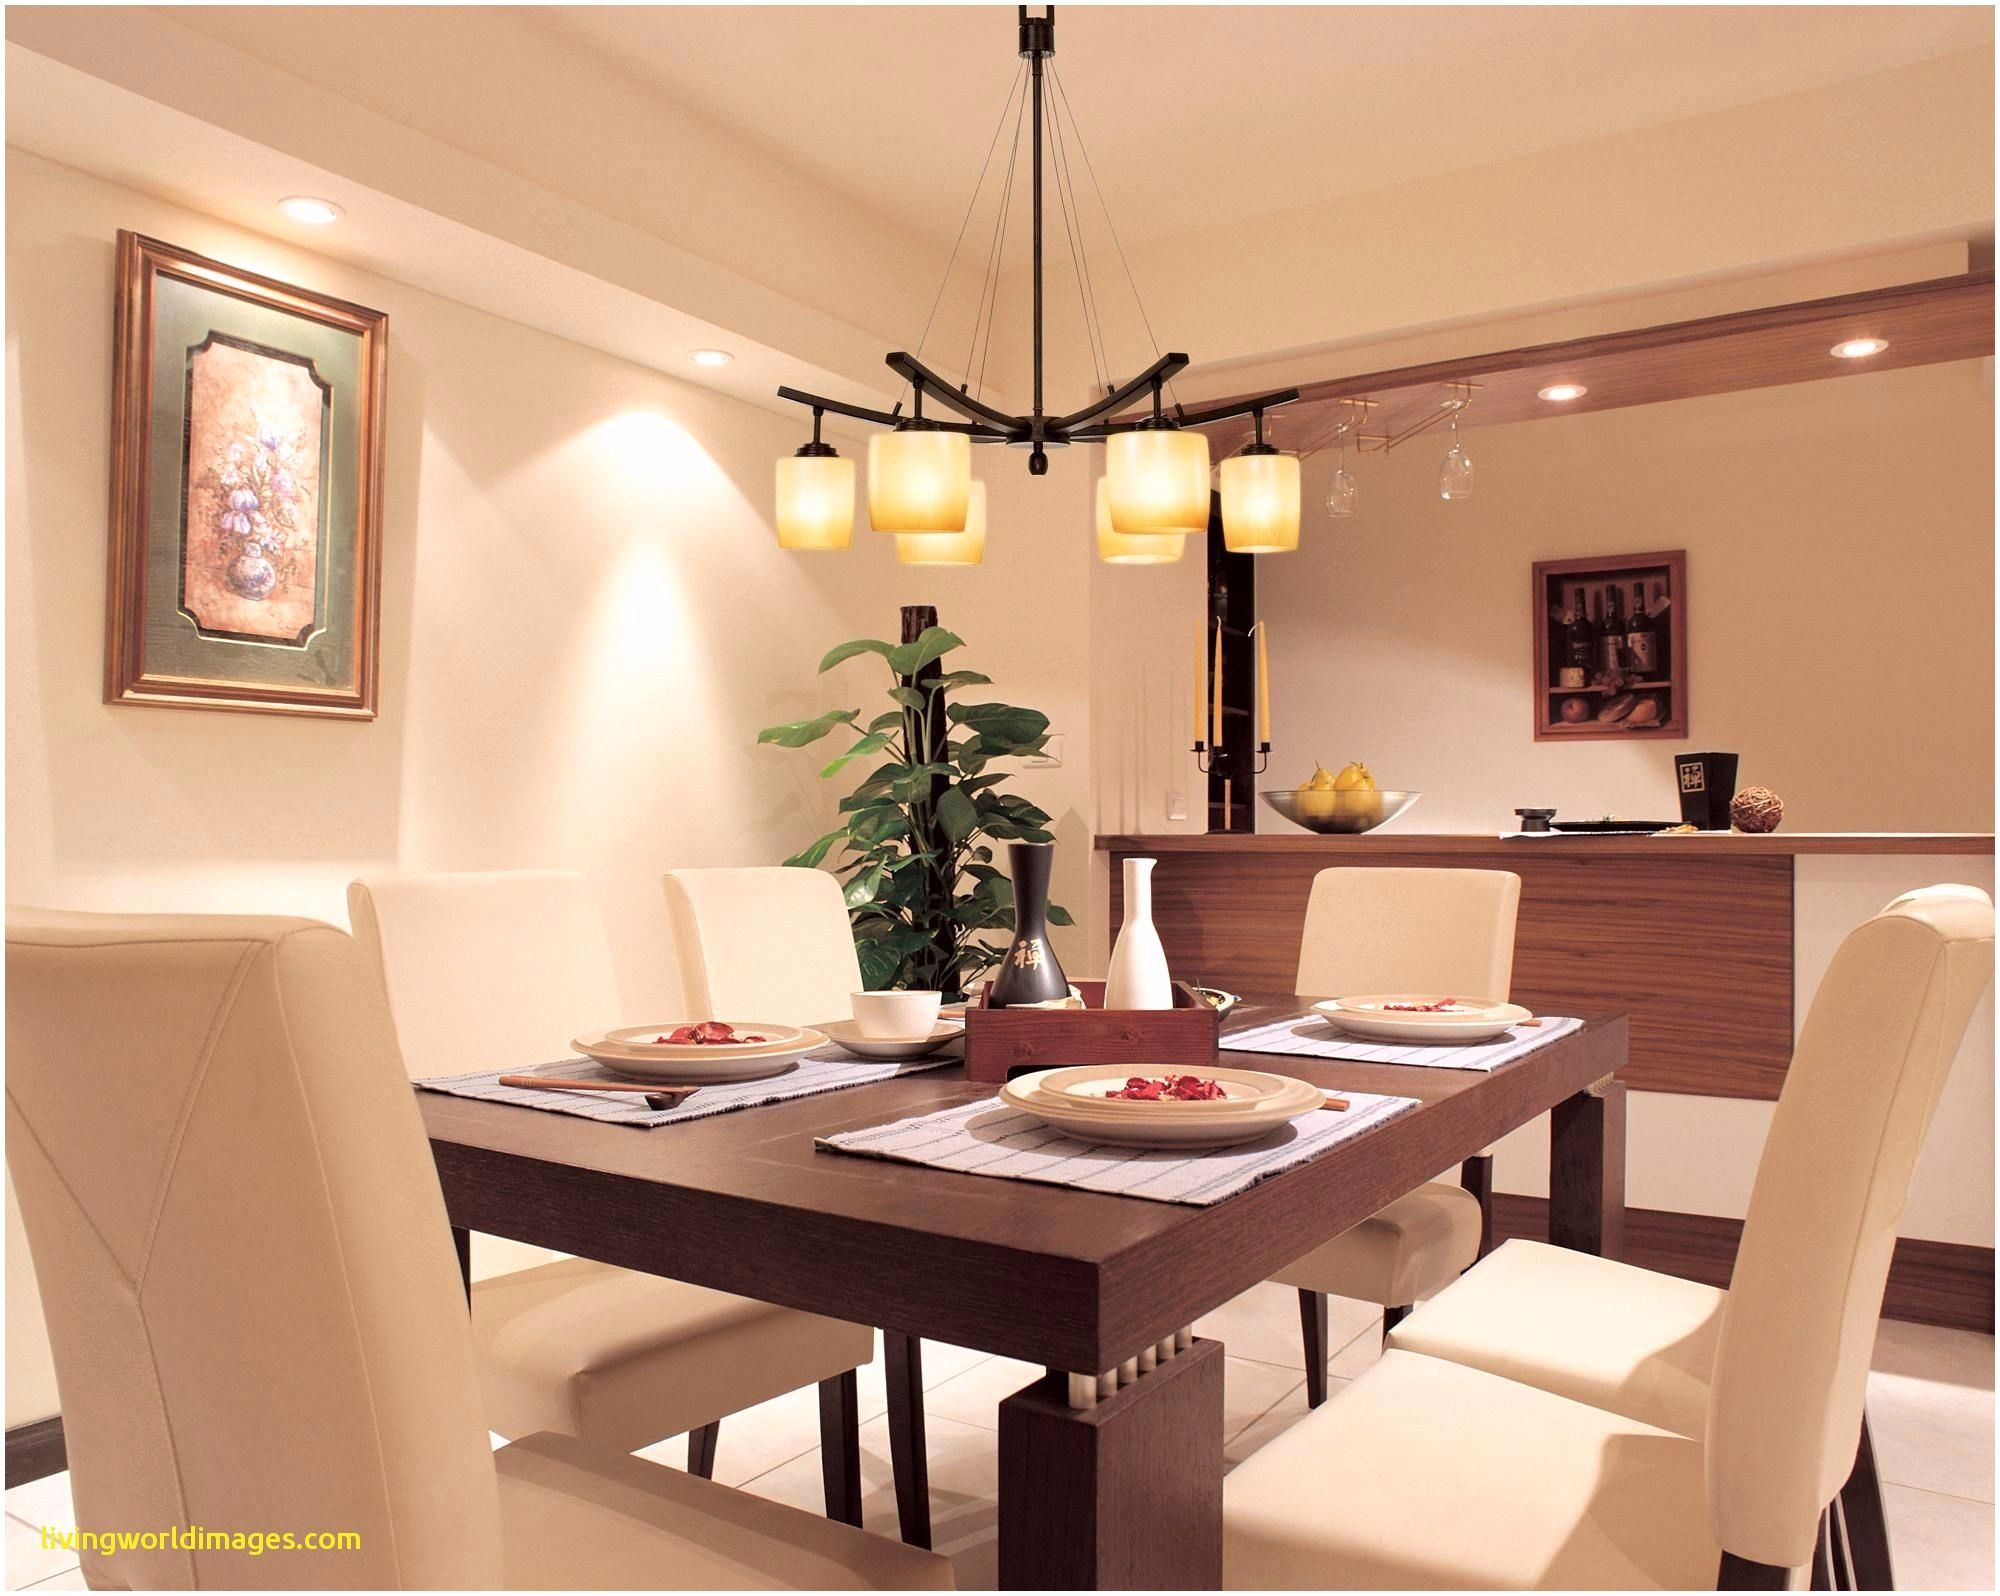 Nice Living Room Tables Gallery Singapore Interior Design Dining Room Lighting Dining Room Light Fixtures Beautiful Dining Rooms